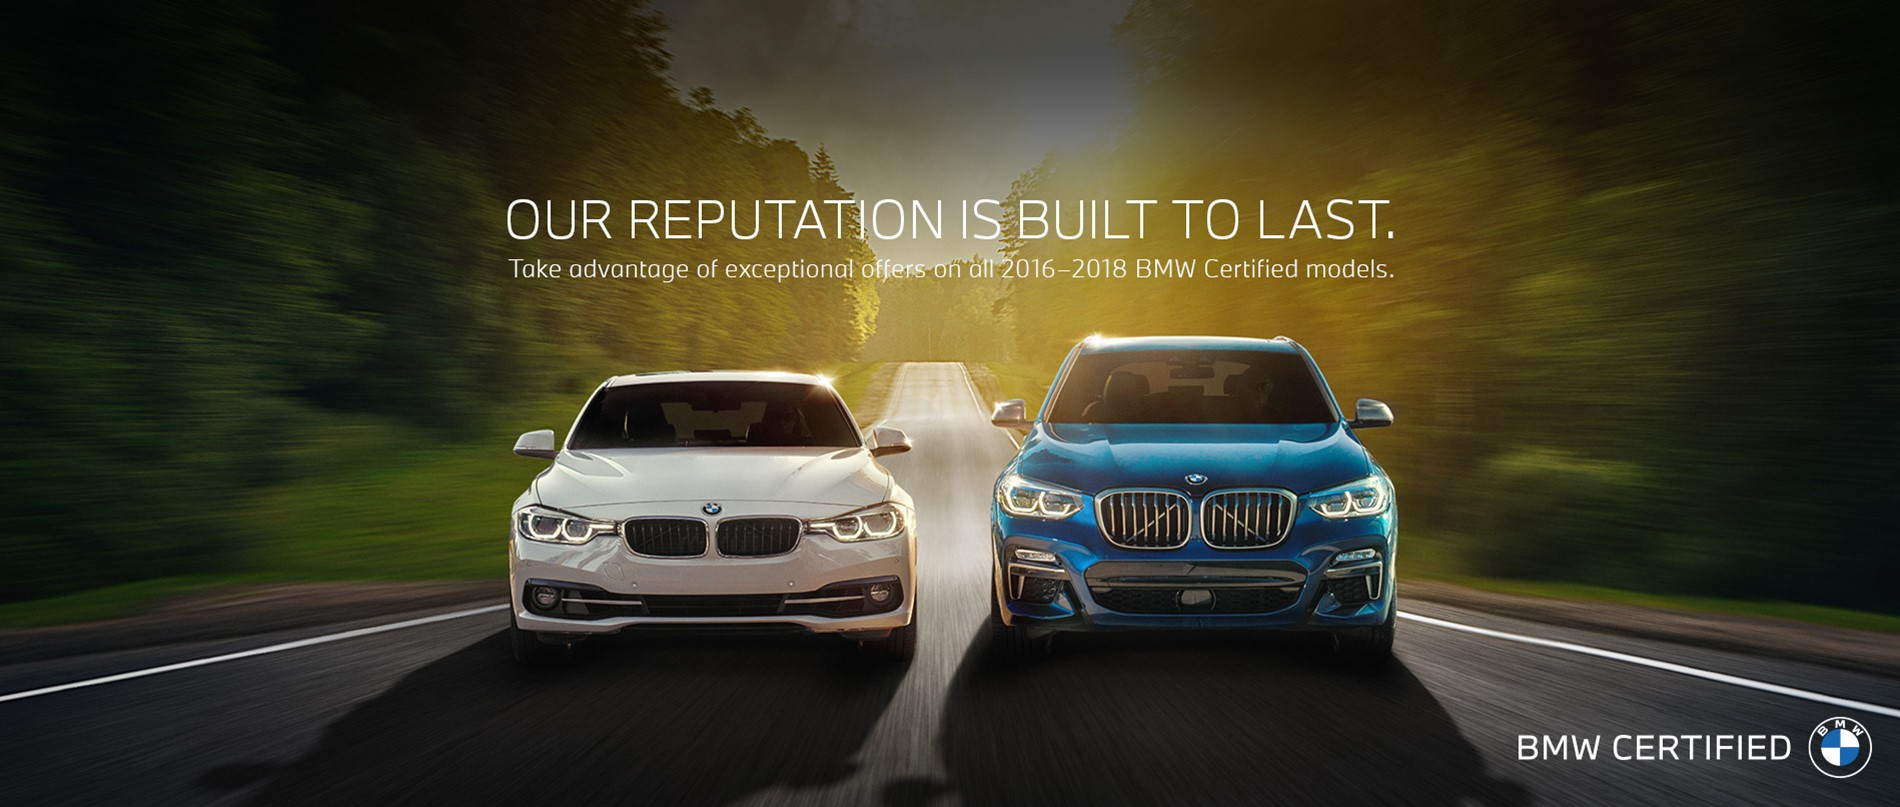 Used BMW, BMW Certified, Pre Owned BMW